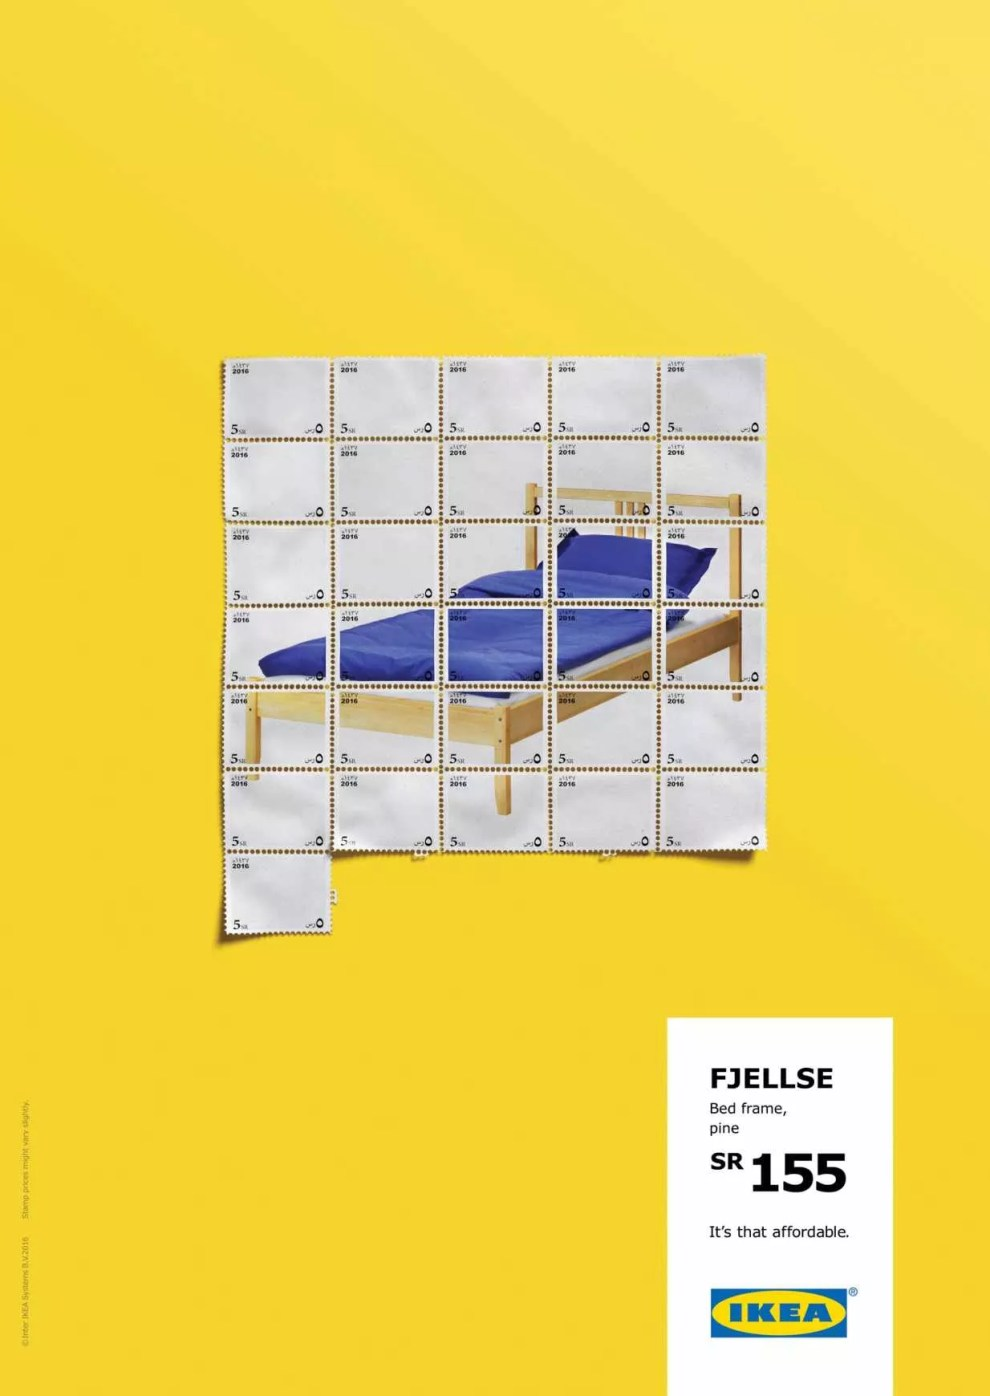 ikea-ads-clever-affordability-1